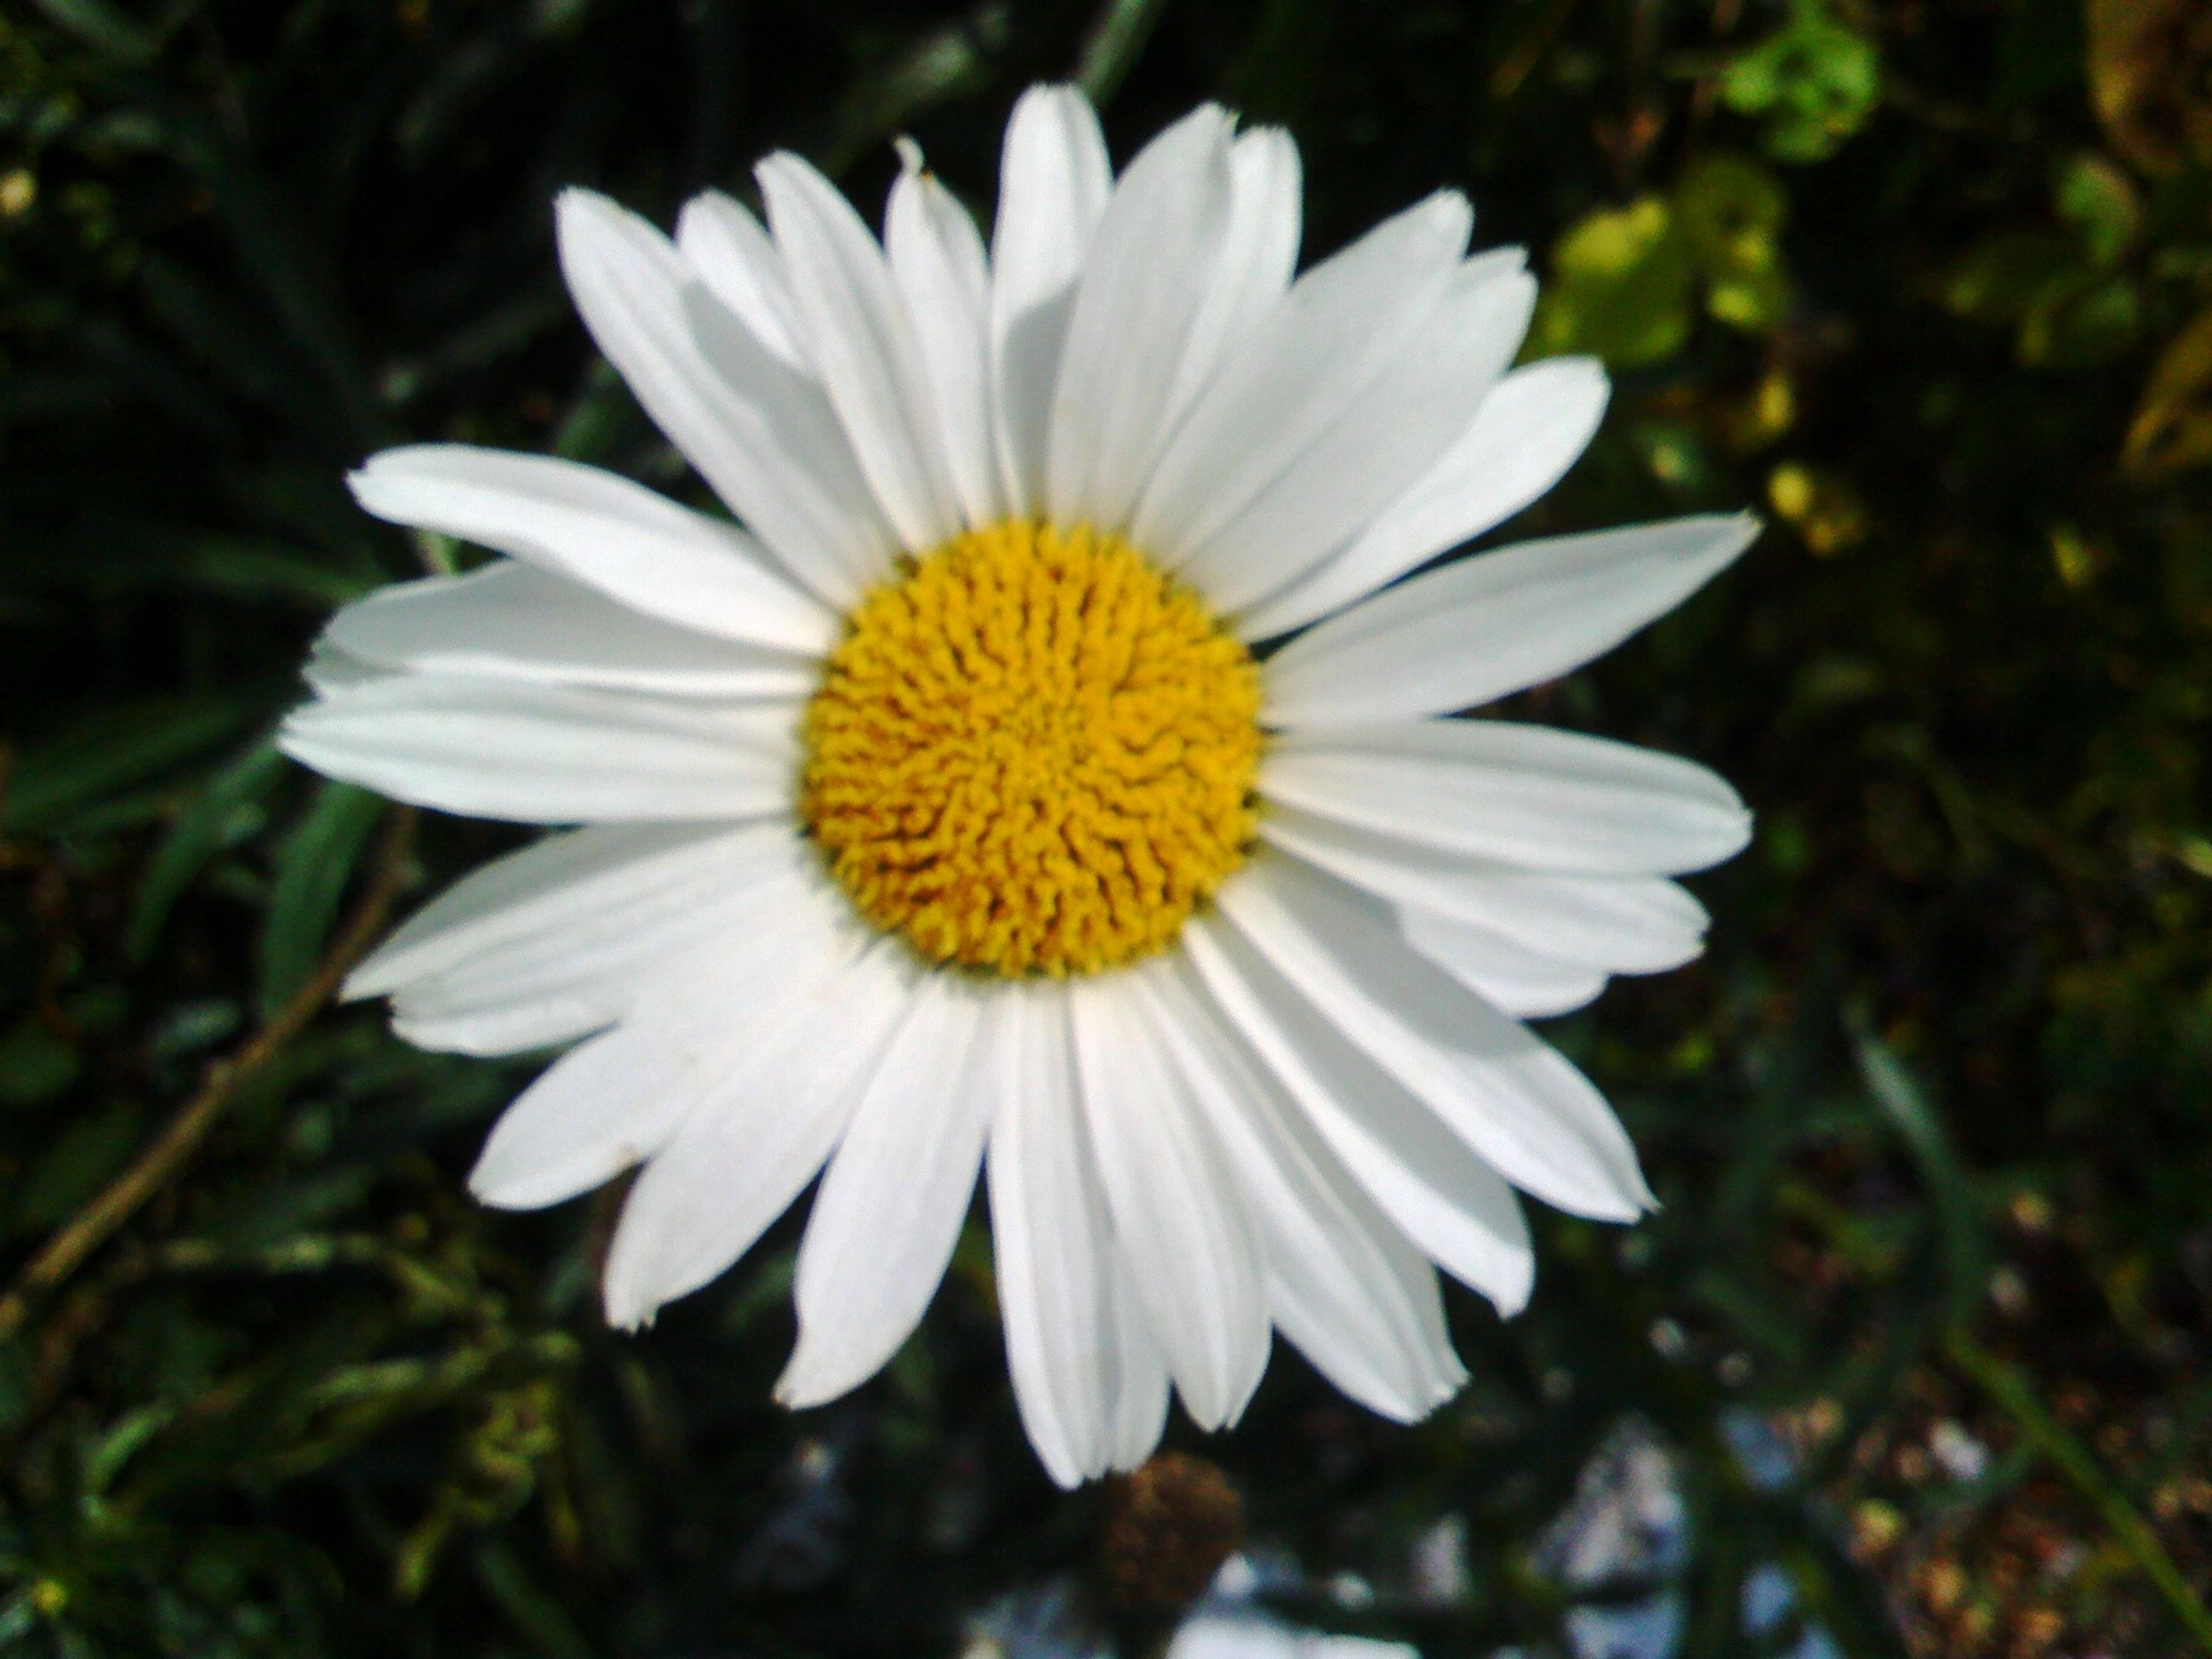 flower, petal, flower head, freshness, fragility, white color, pollen, single flower, yellow, daisy, growth, blooming, beauty in nature, close-up, focus on foreground, nature, plant, in bloom, outdoors, day